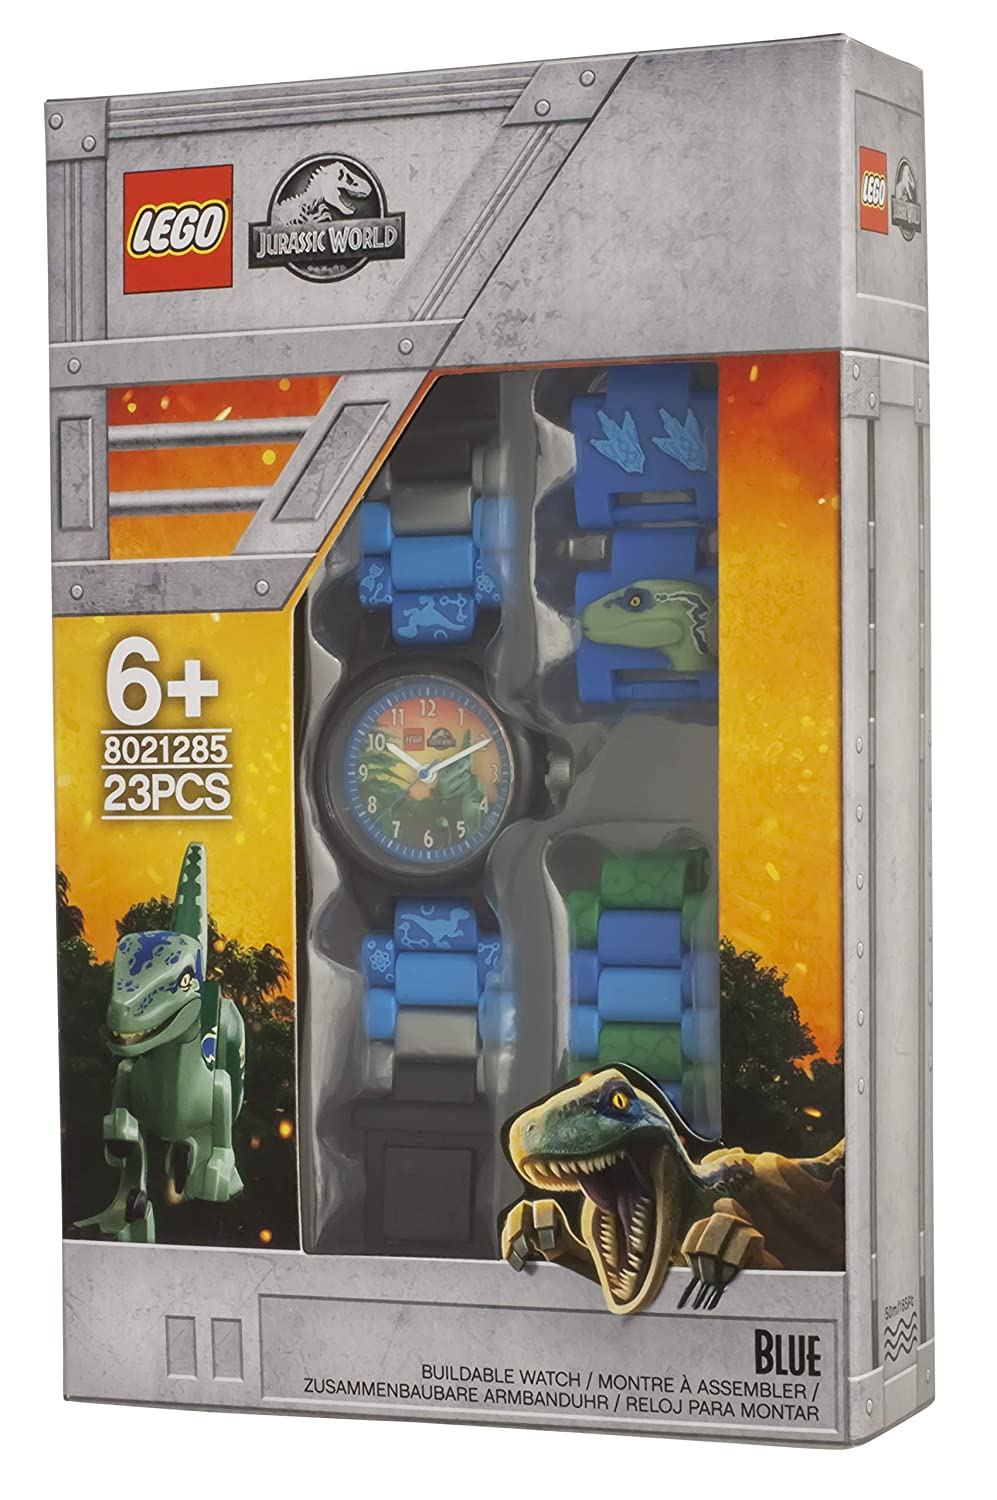 Amazon.com: LEGO Watches and Clocks Boys Jurassic World Blue Quartz Plastic Watch, Color:Blue (Model: 8021285): Watches